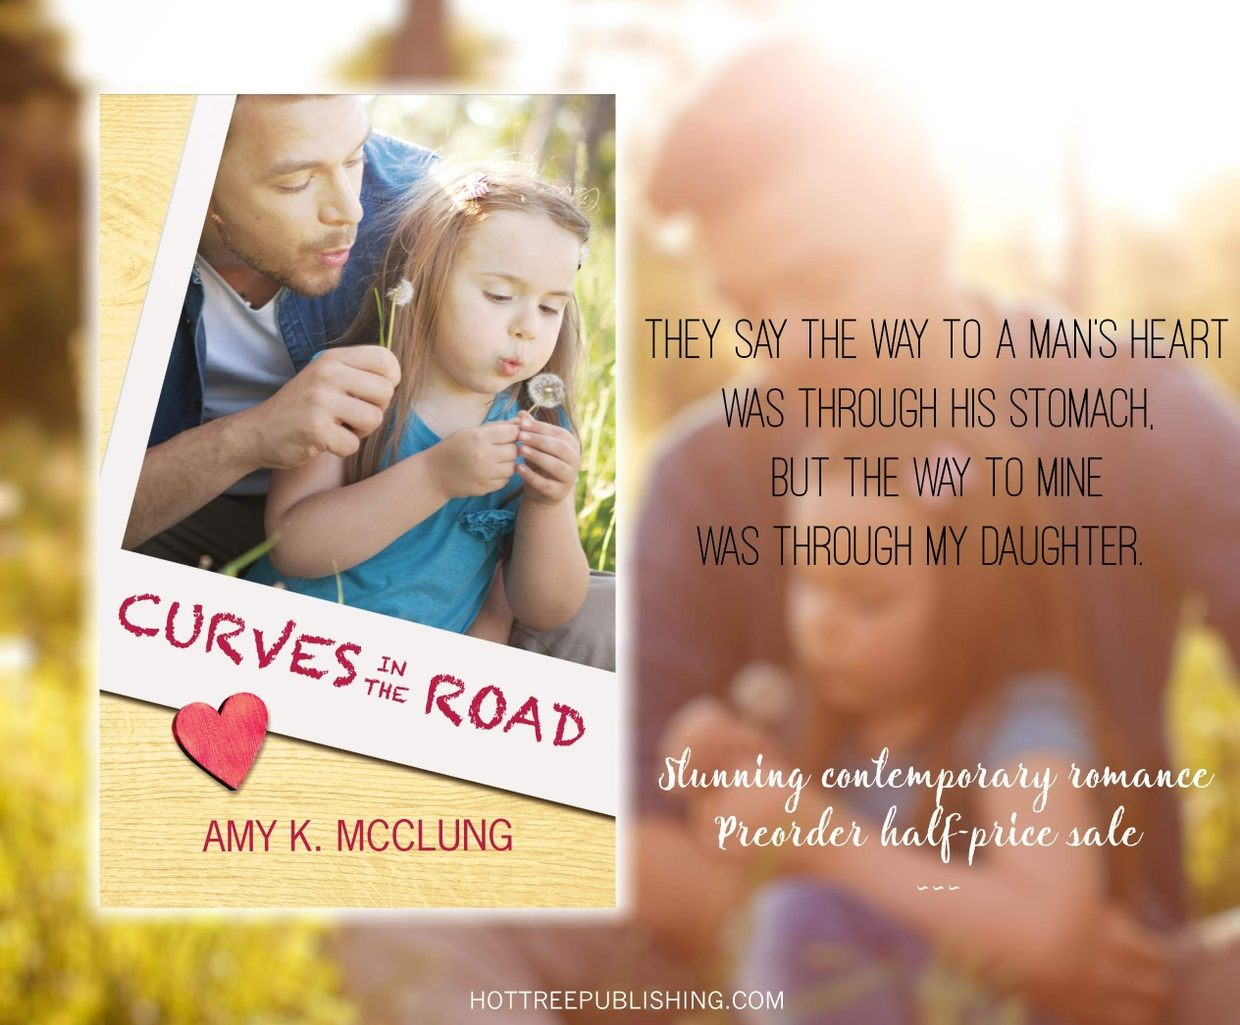 ePub Curves in the Road by Amy K. McClung